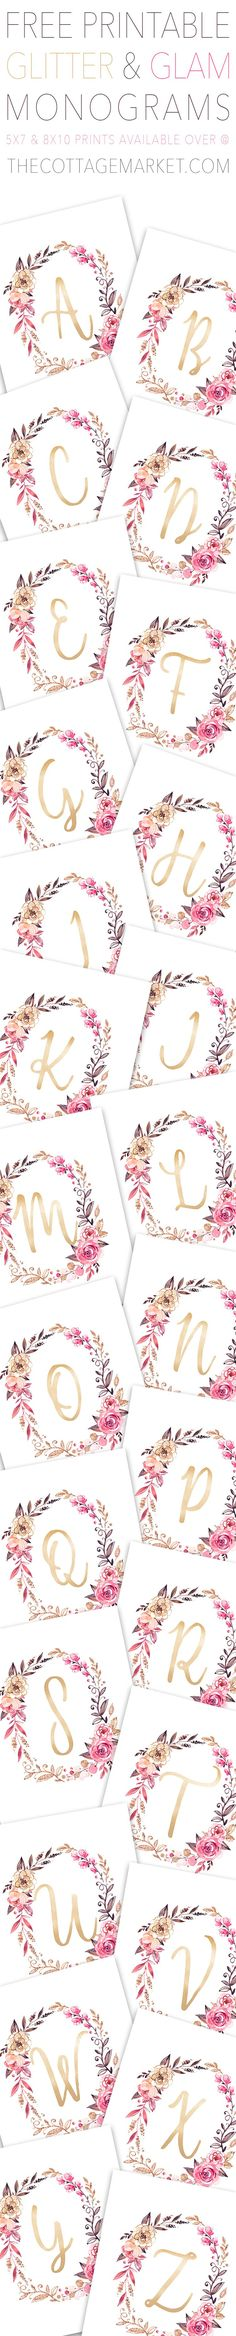 Free Printable Glitter and Glam Monograms | The Cottage Market | Bloglovin'